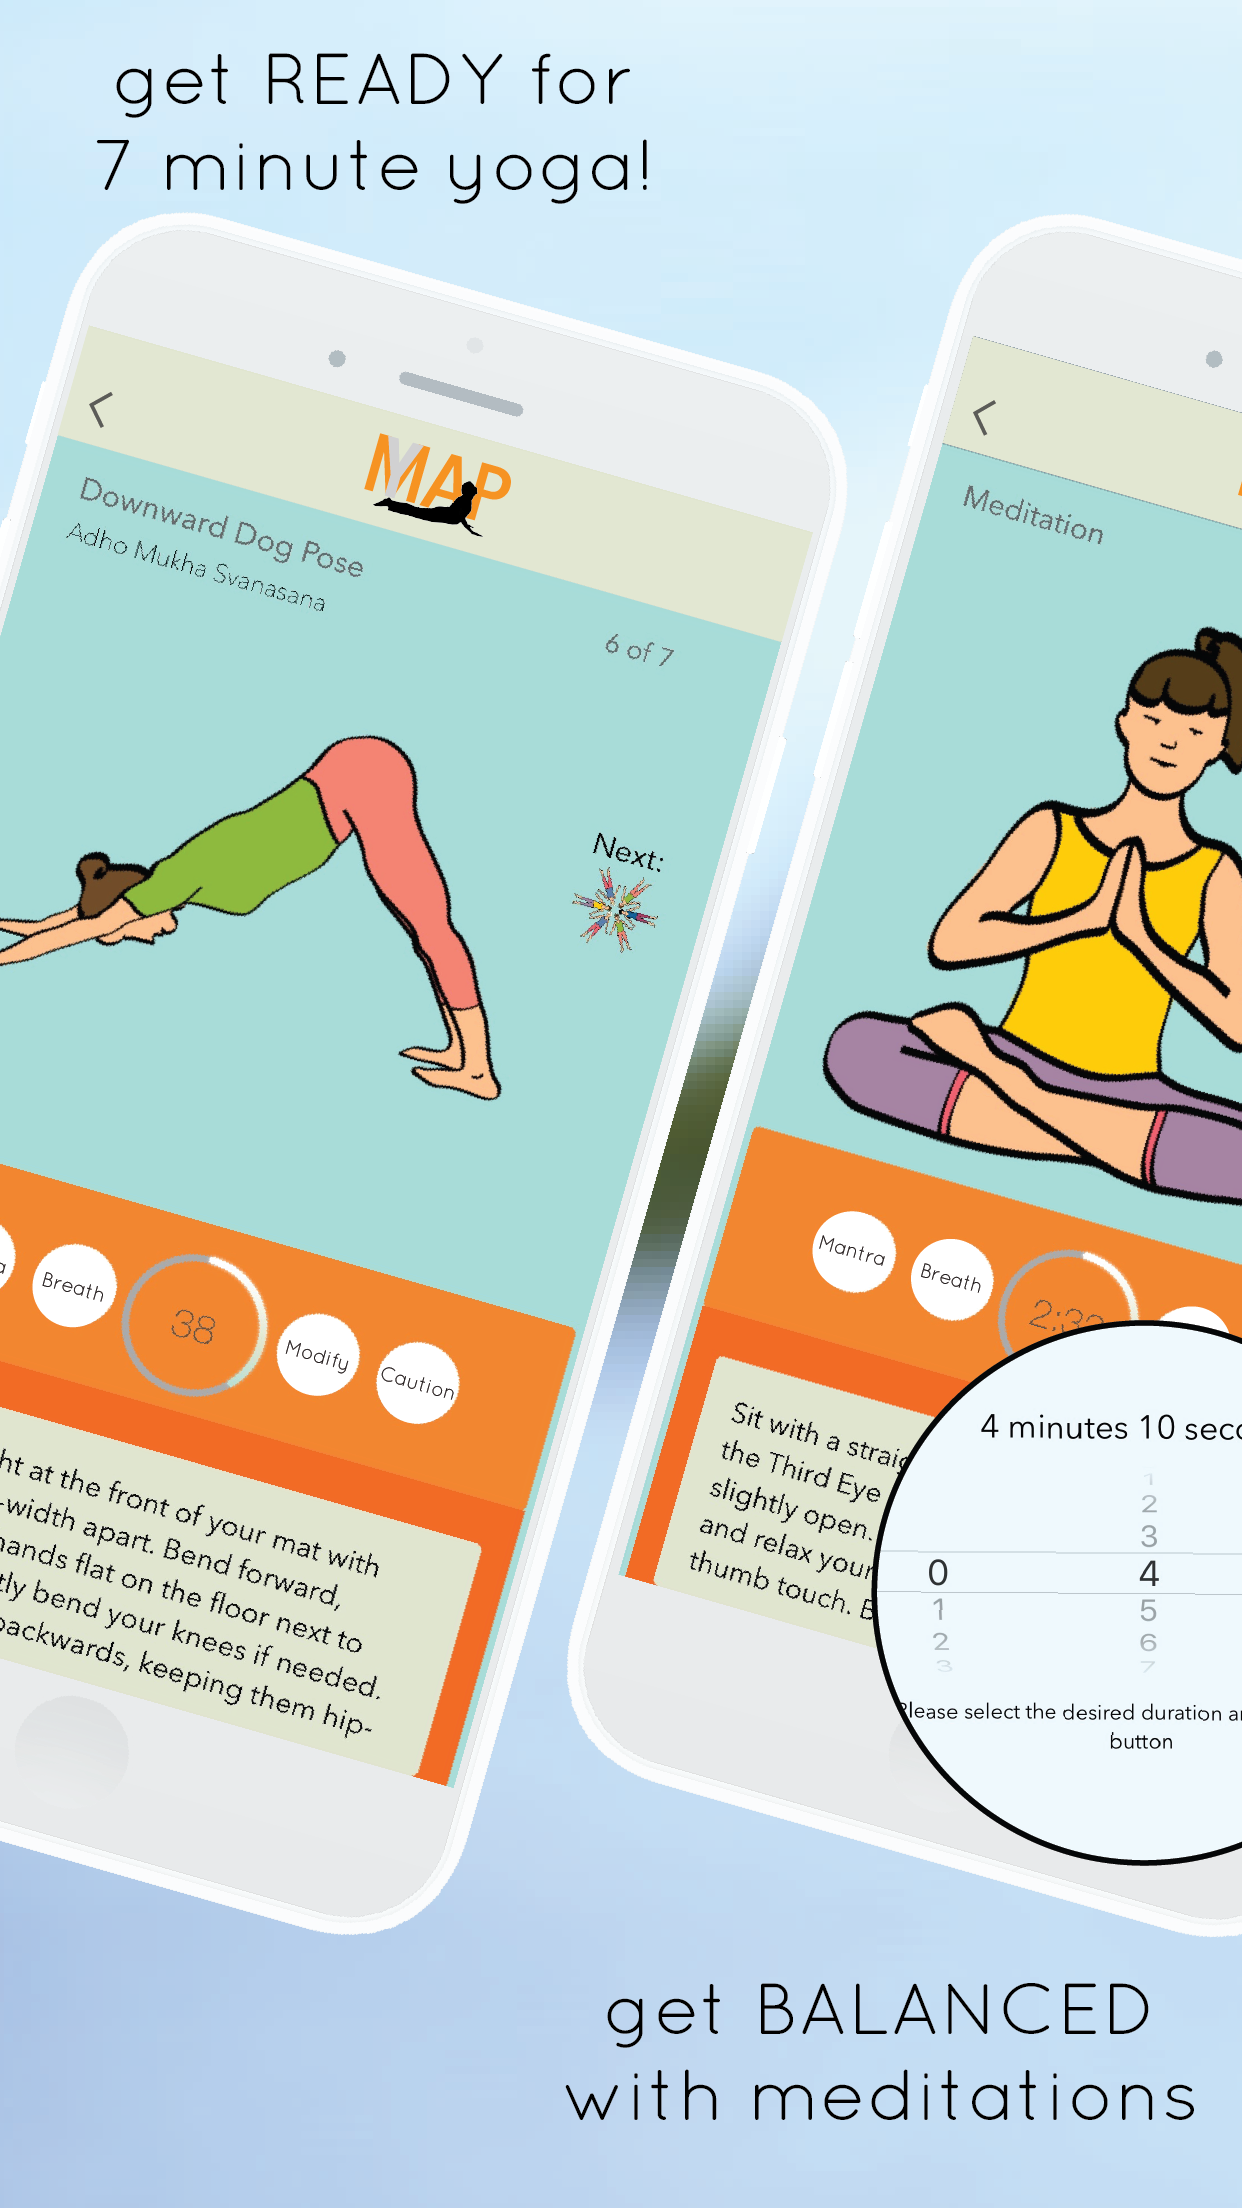 yogamap app - 7 minute yoga exercises, poses, meditation, breath and progress tracking available on the AppStore